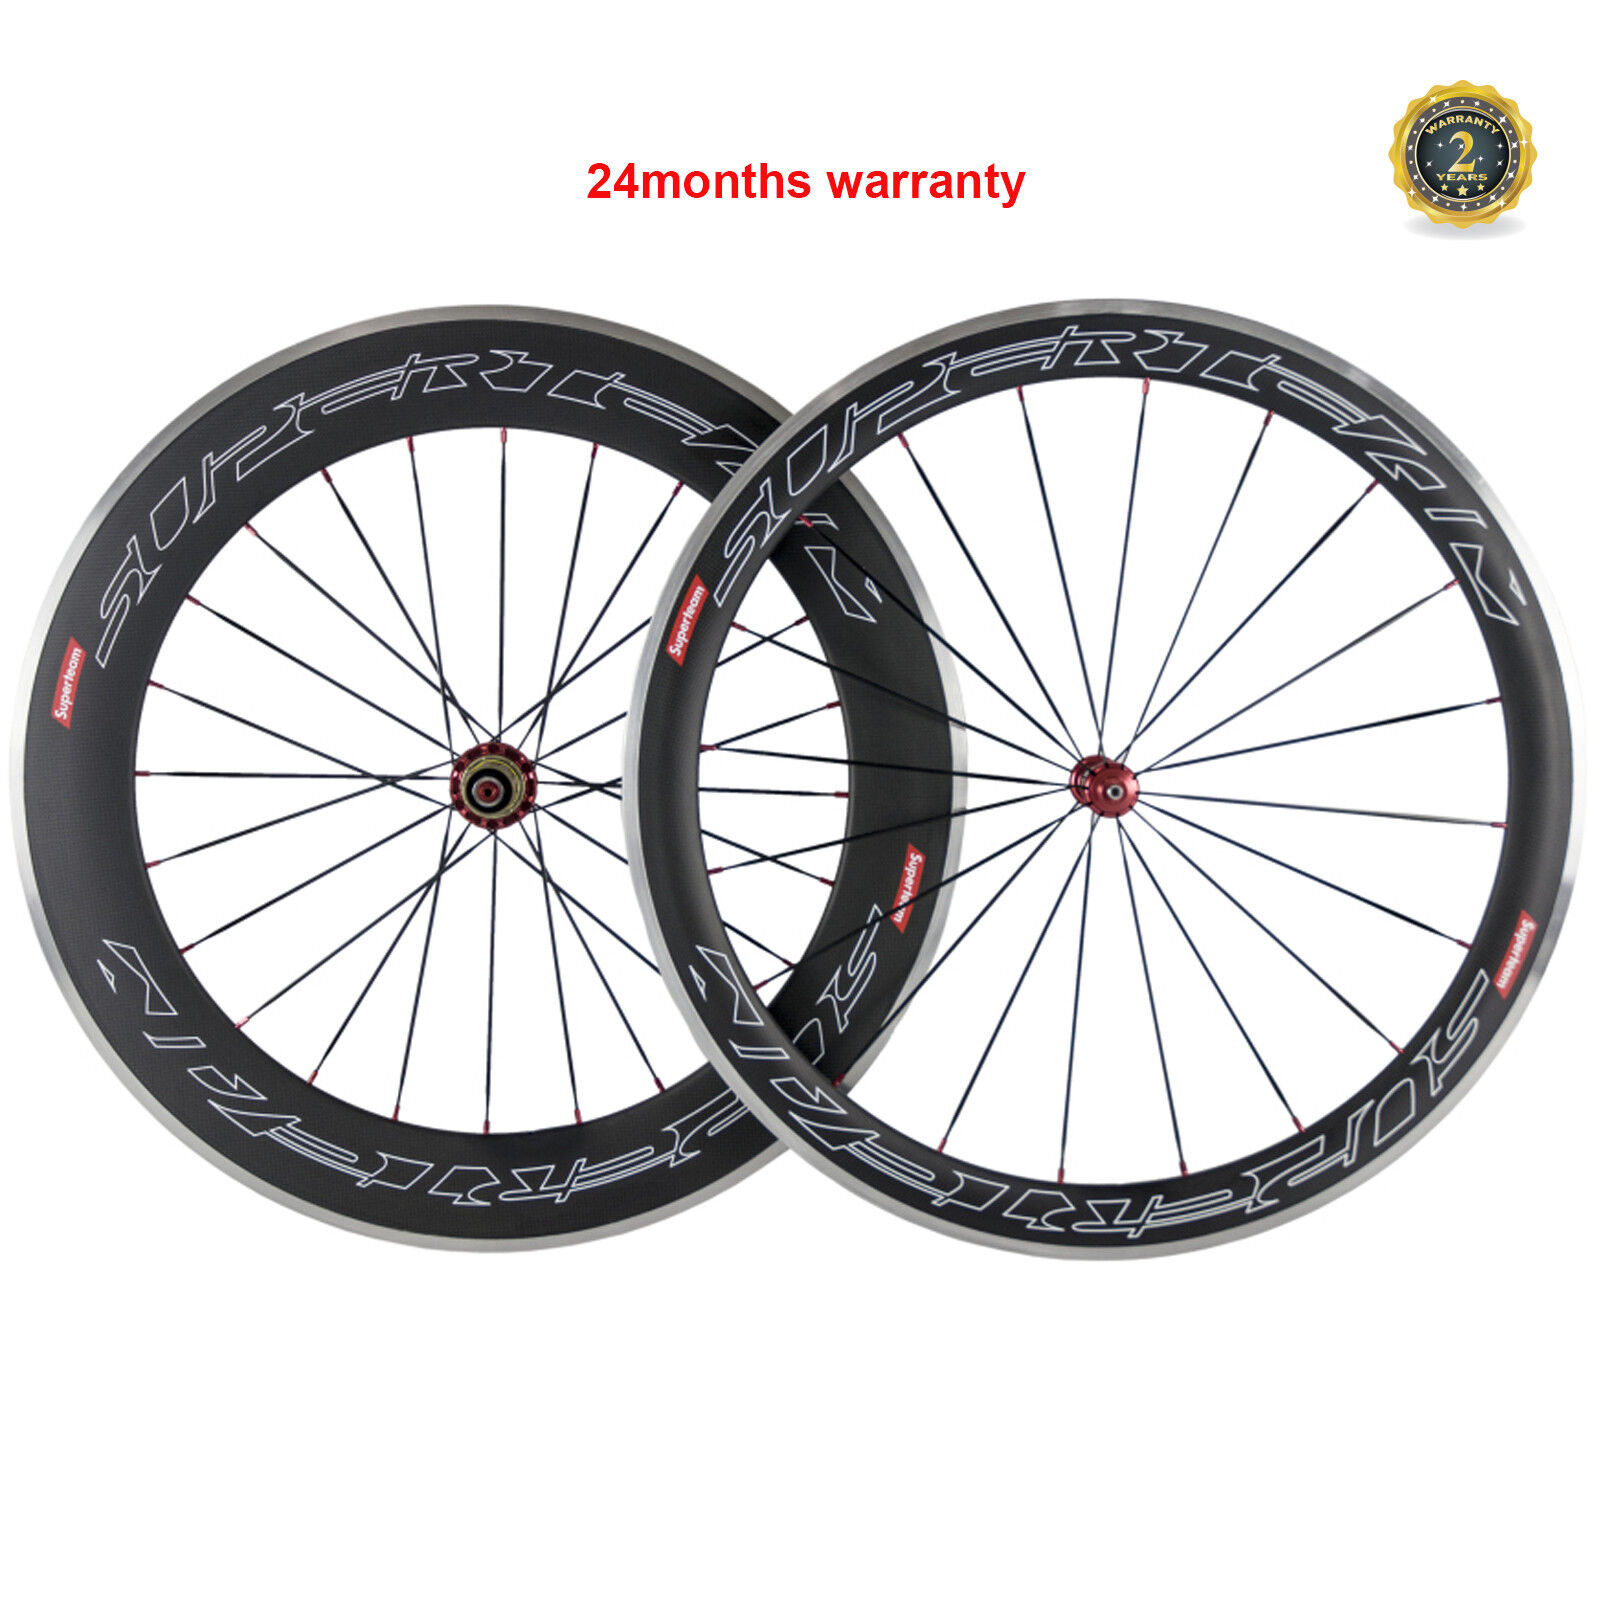 Superteam 50 80mm Aluminum Brake Carbon Wheelset 700C Bicycle Front&Rear  Wheels  discounts and more